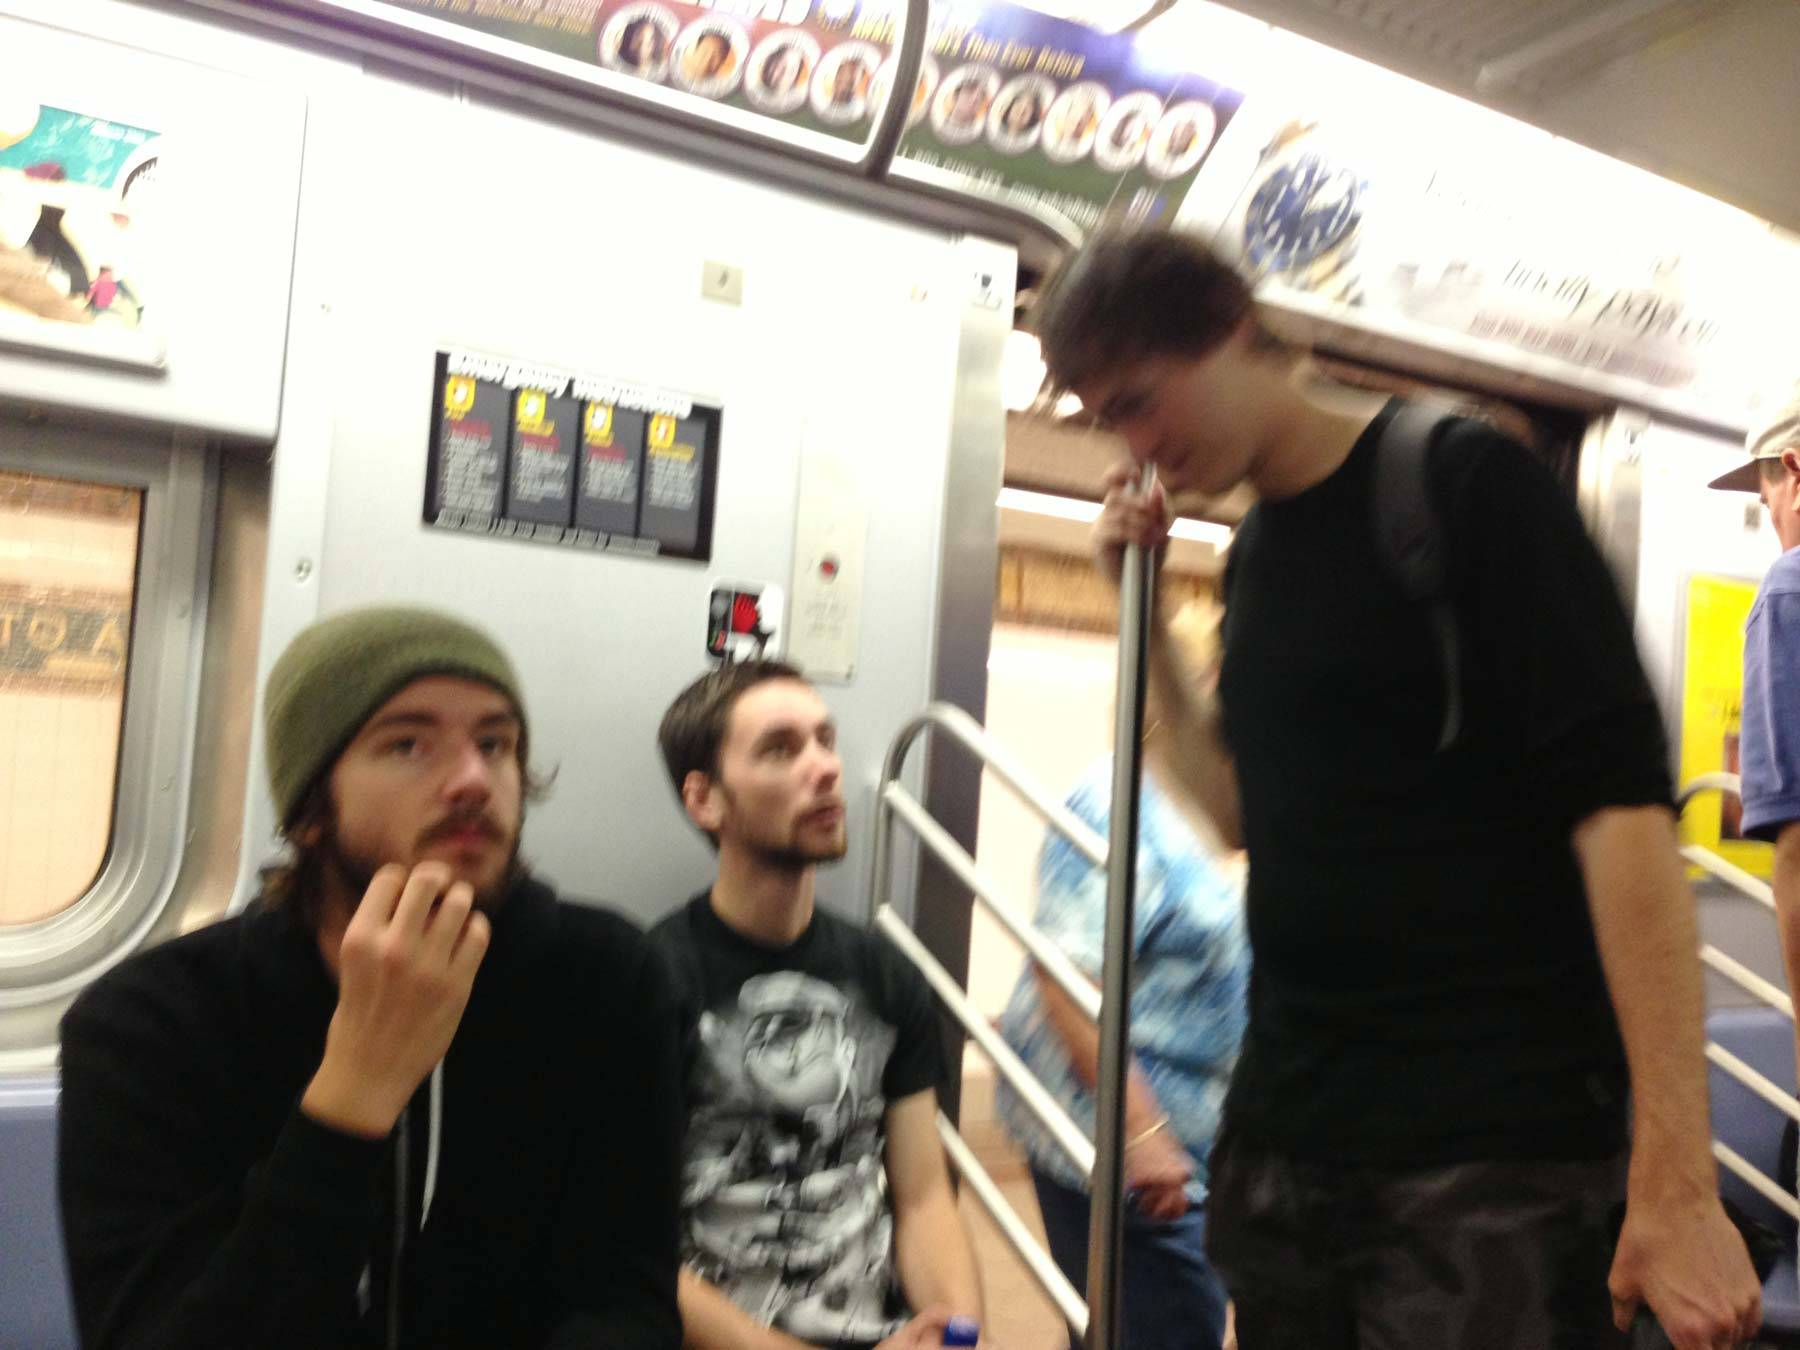 Butcher, Jared, an Richard on the train